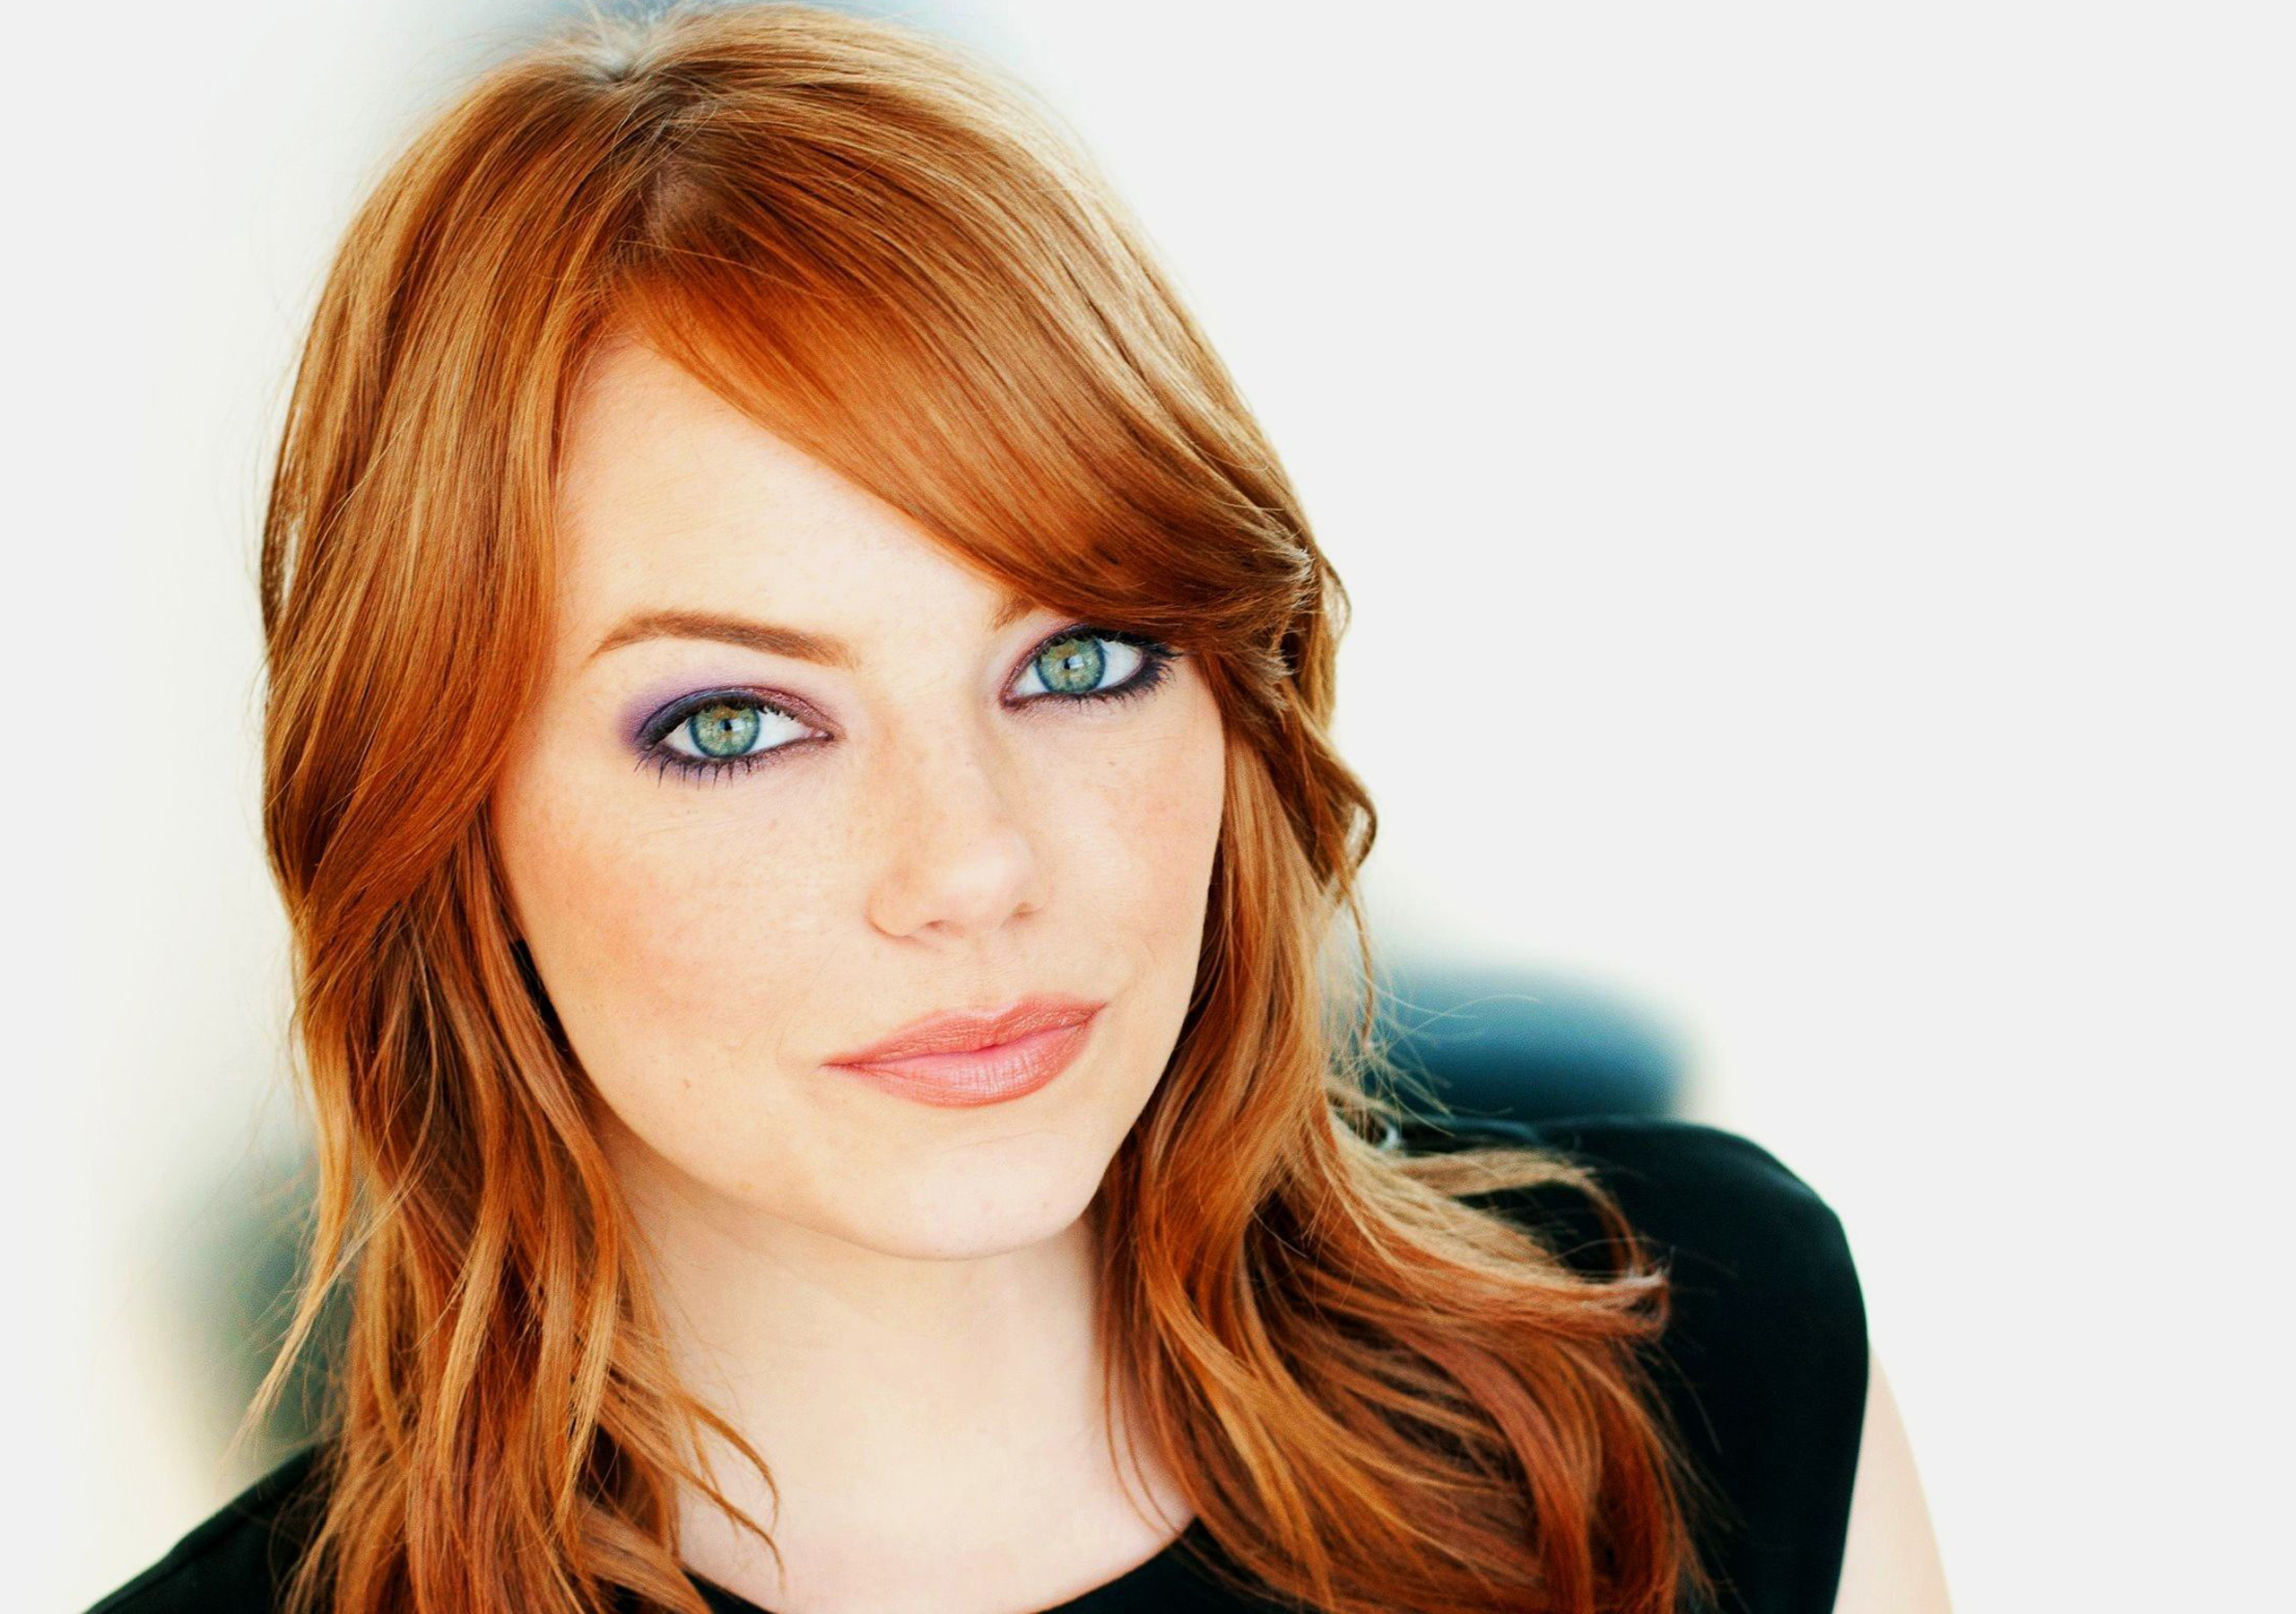 Desktop Emma Stone Beautiful Eye Look And Face Still Mobile Free Pictures Hd